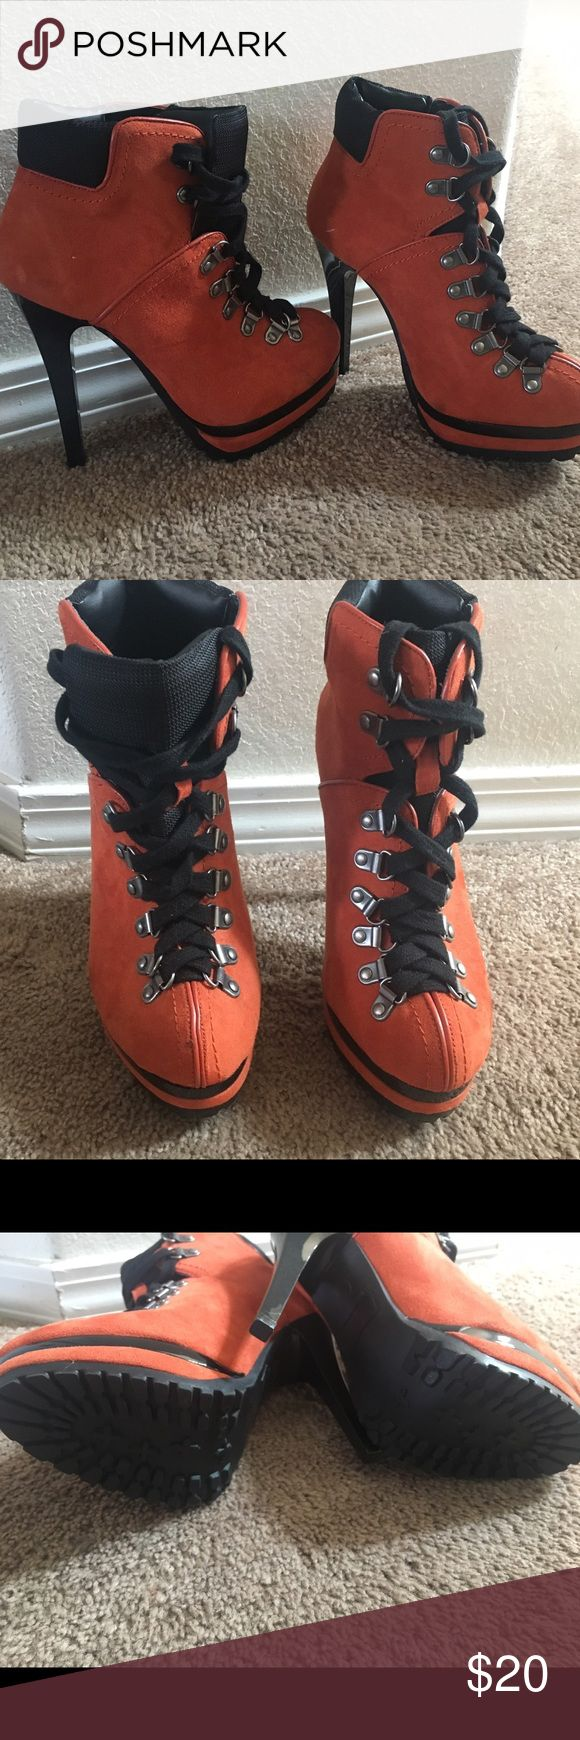 """Orange high heel boots Orange lace up high heels boots, new without box, 5"""" heel.  So cute! Xhilaration Shoes Heels"""